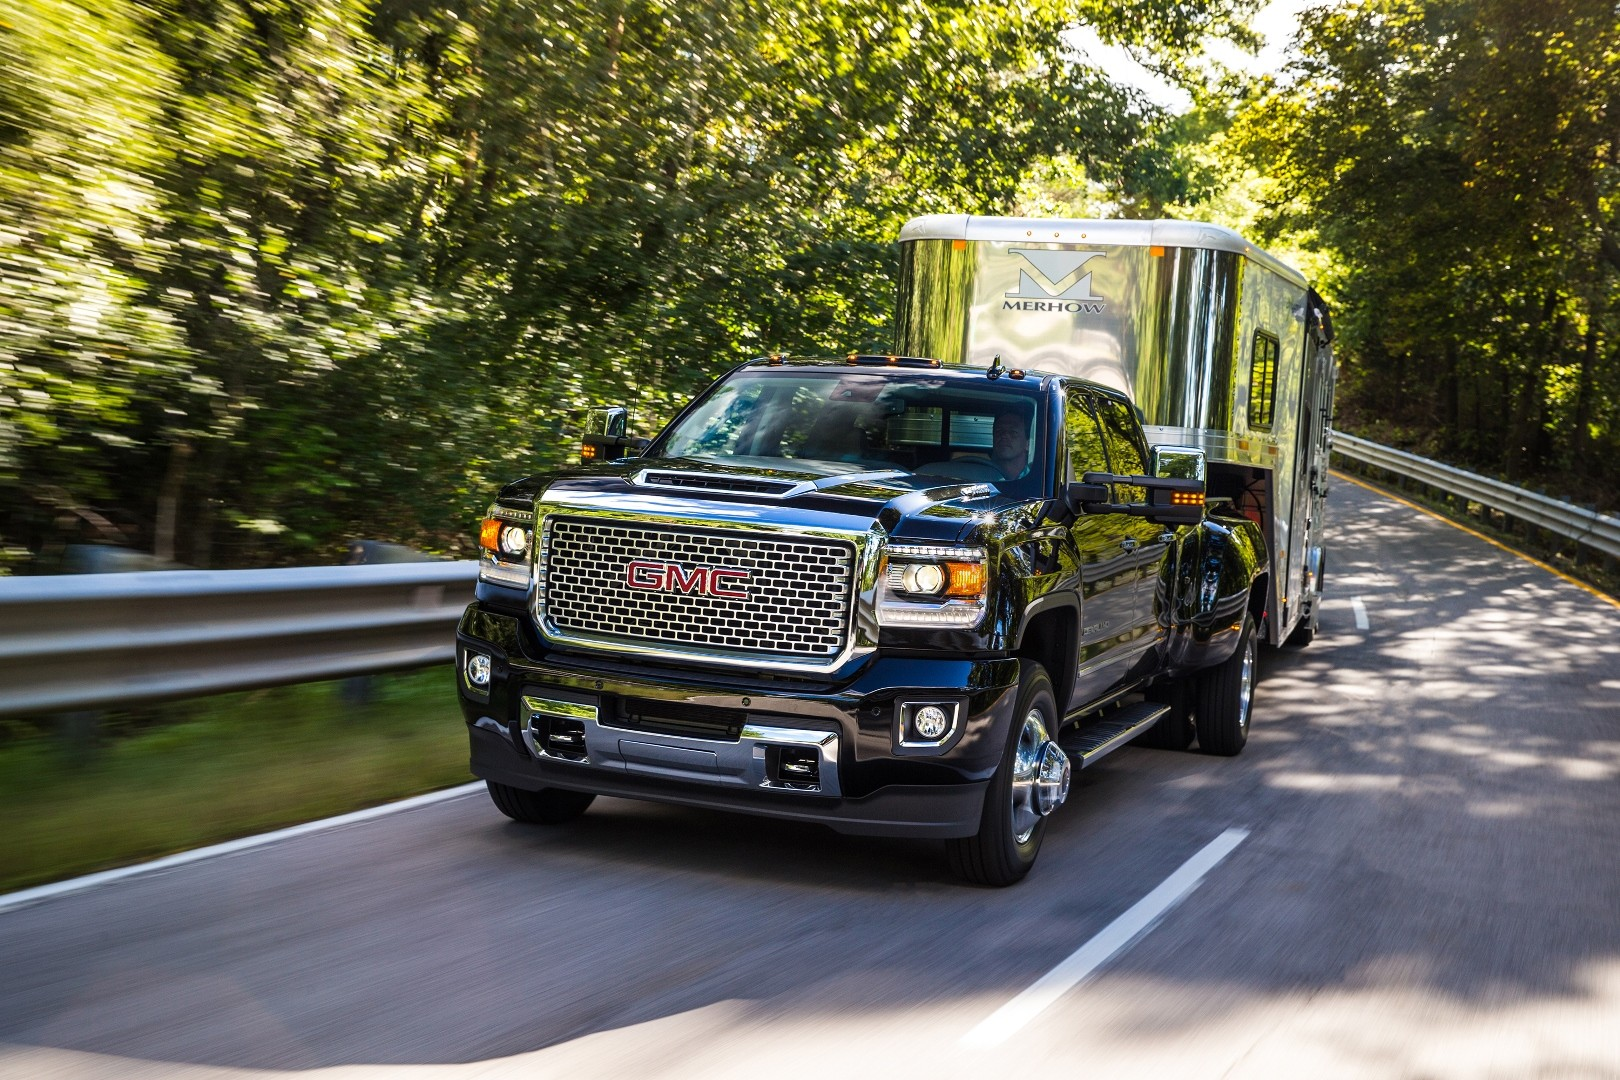 2017 chevrolet silverado hd duramax first look reviews. Black Bedroom Furniture Sets. Home Design Ideas